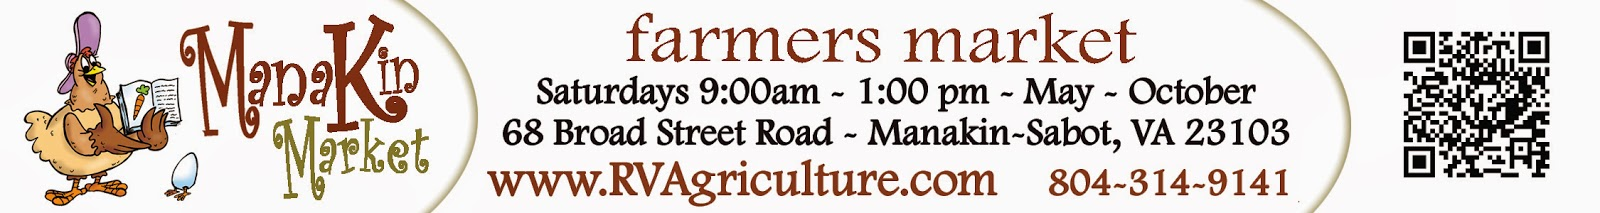 RVAg's Manakin Market is open May-Oct, 9am-1pm